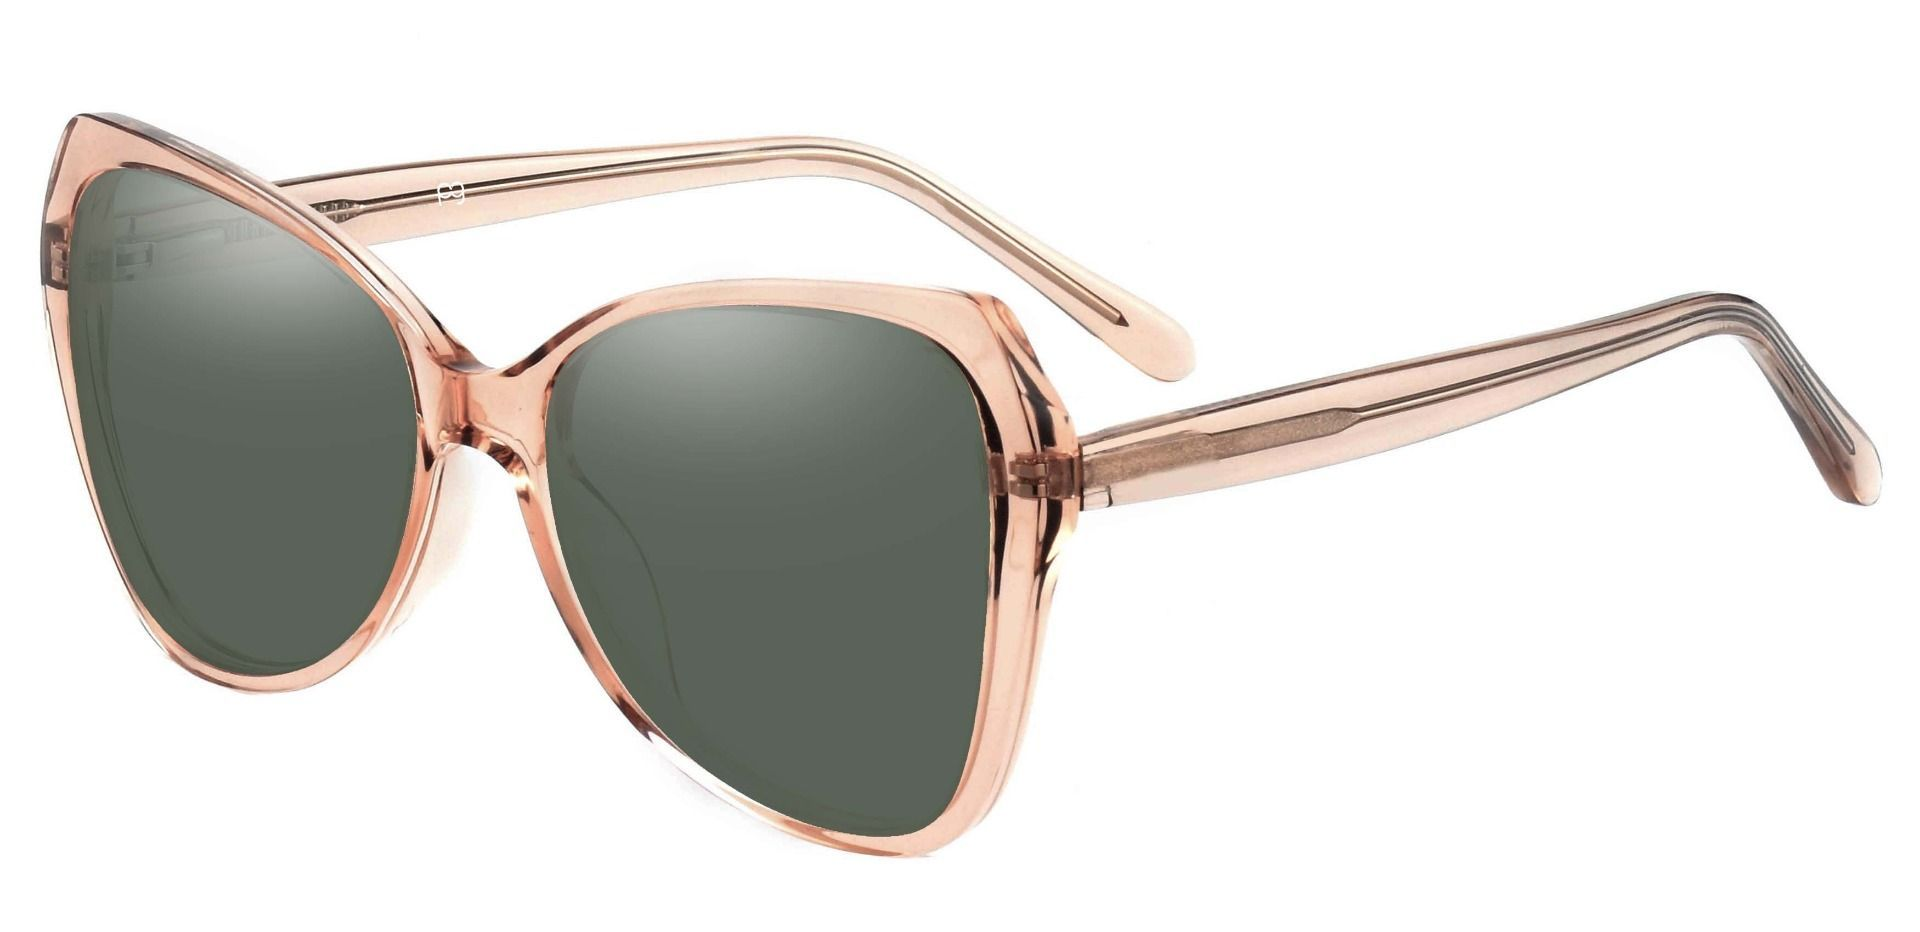 Kayla Geometric Lined Bifocal Sunglasses - Brown Frame With Green Lenses